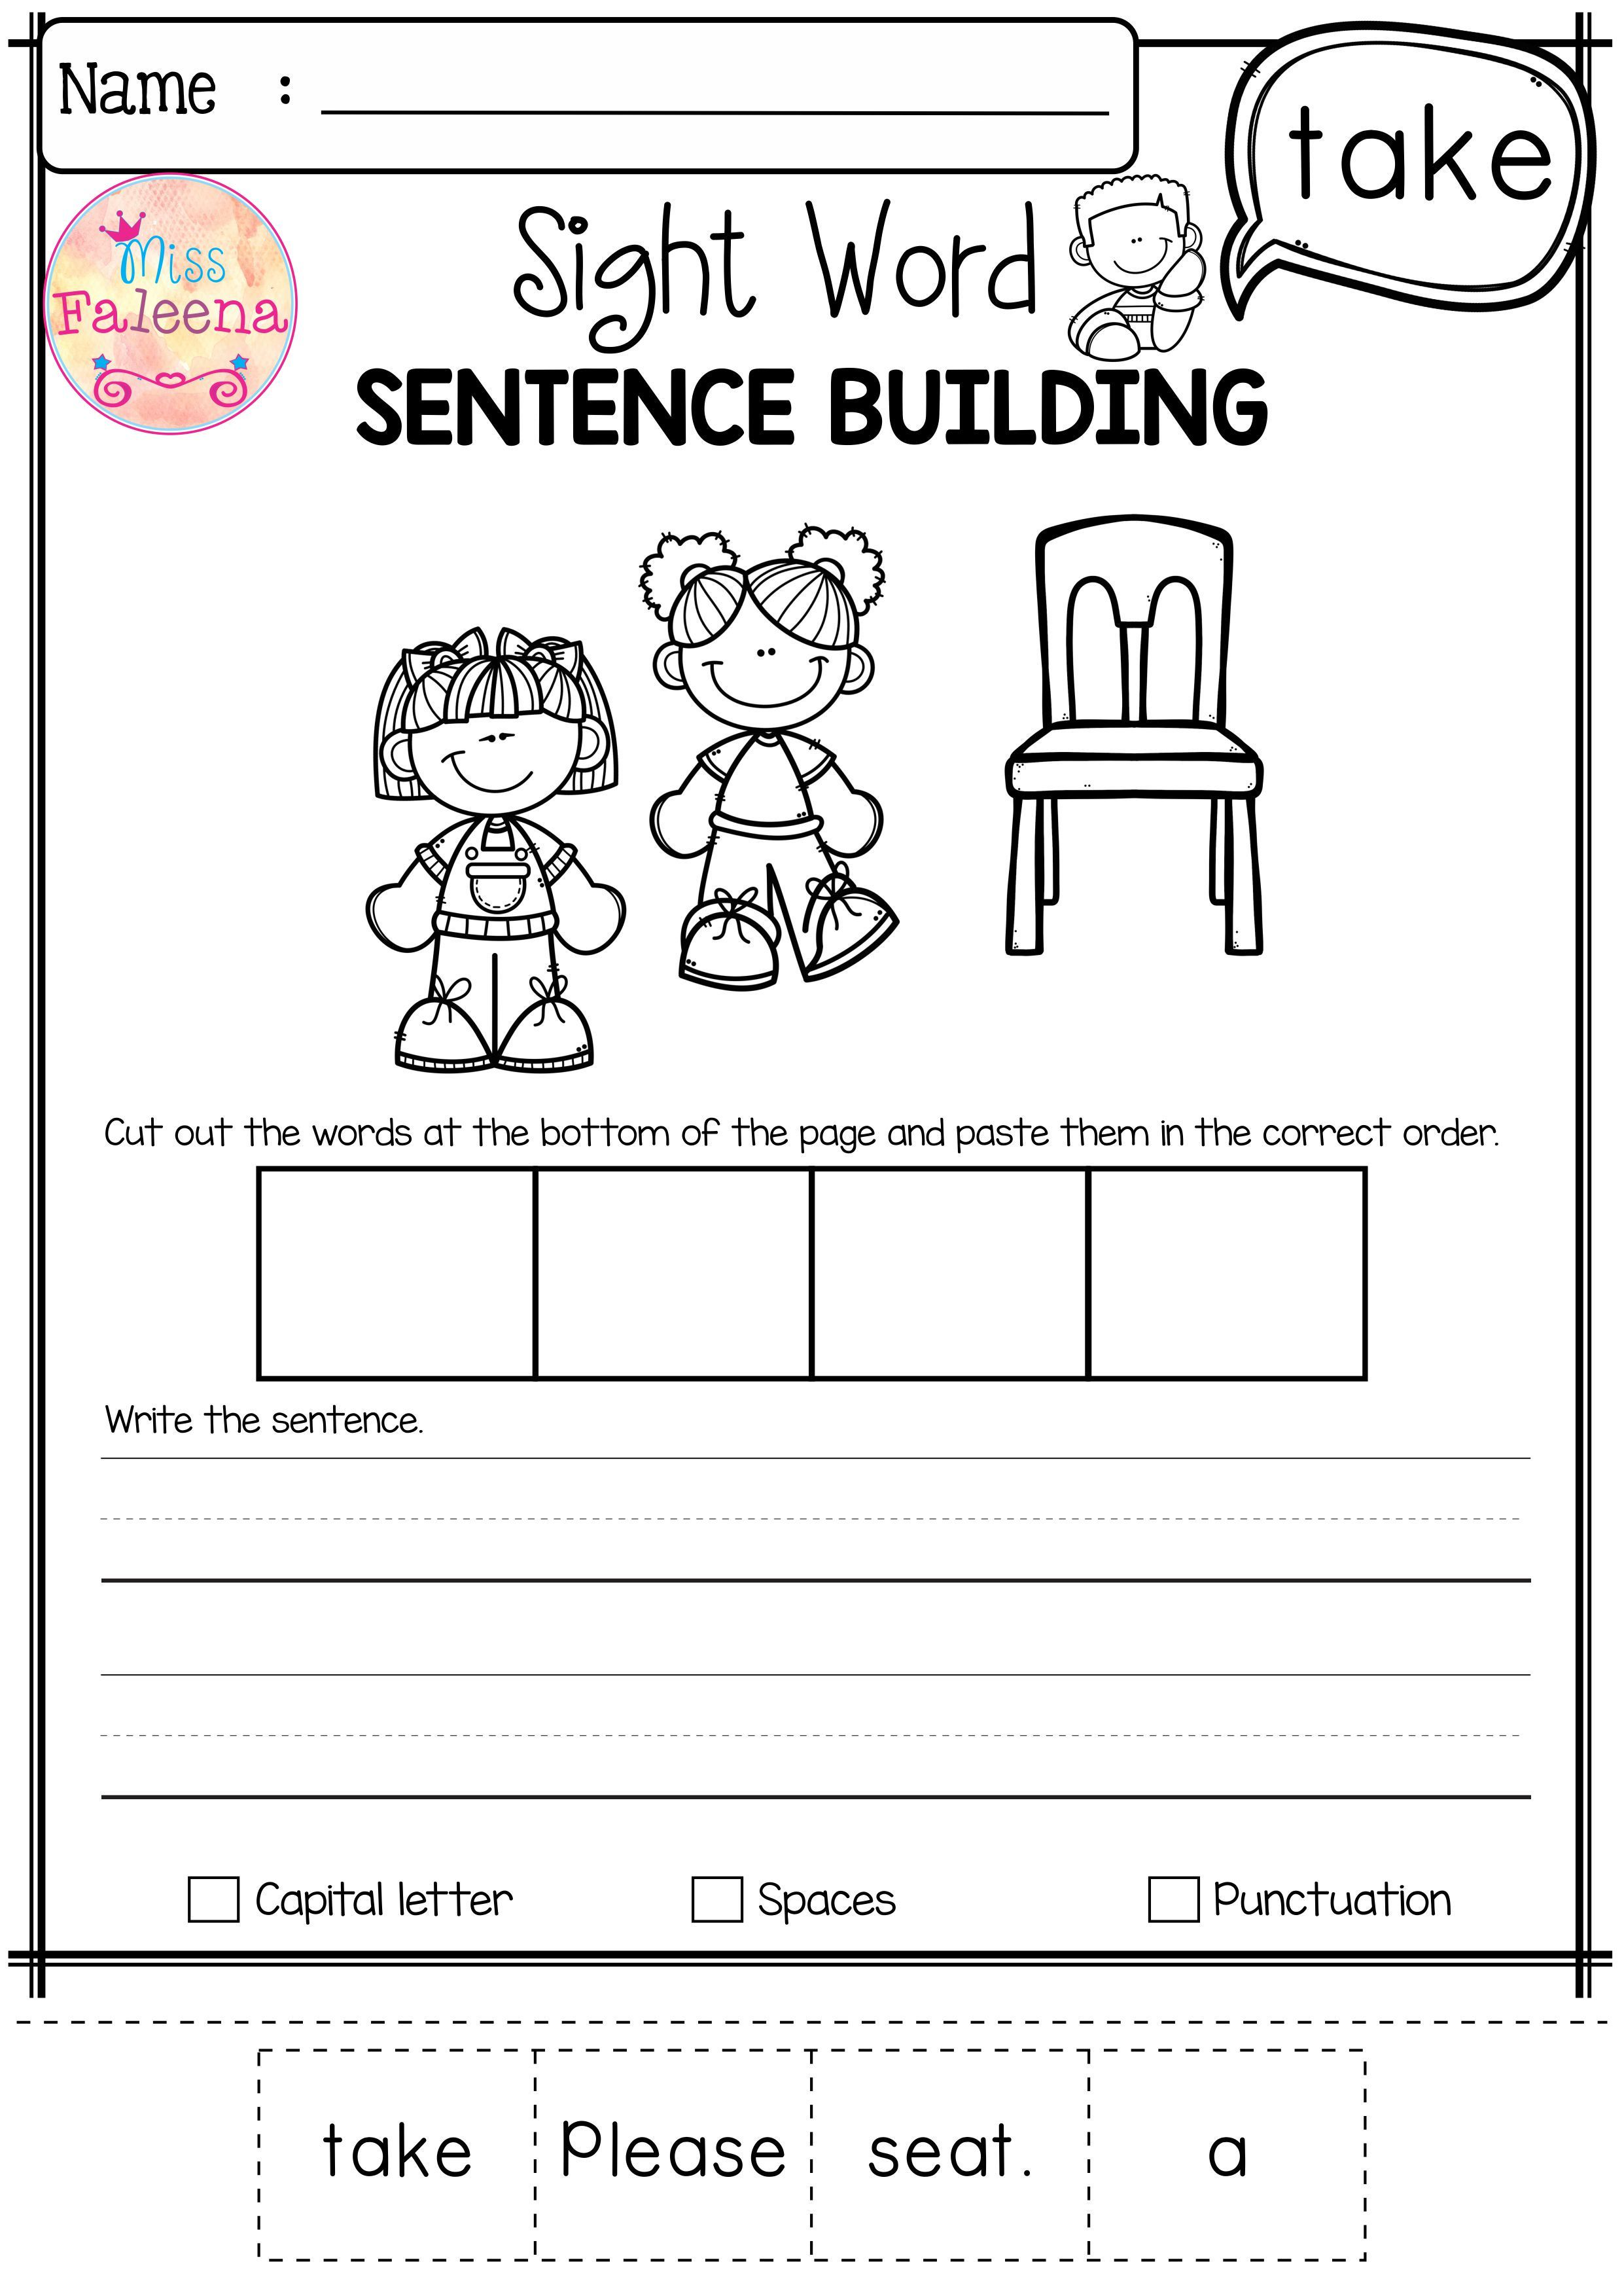 free sight word sentence building miss faleena 39 s store sight word sentences sentence. Black Bedroom Furniture Sets. Home Design Ideas